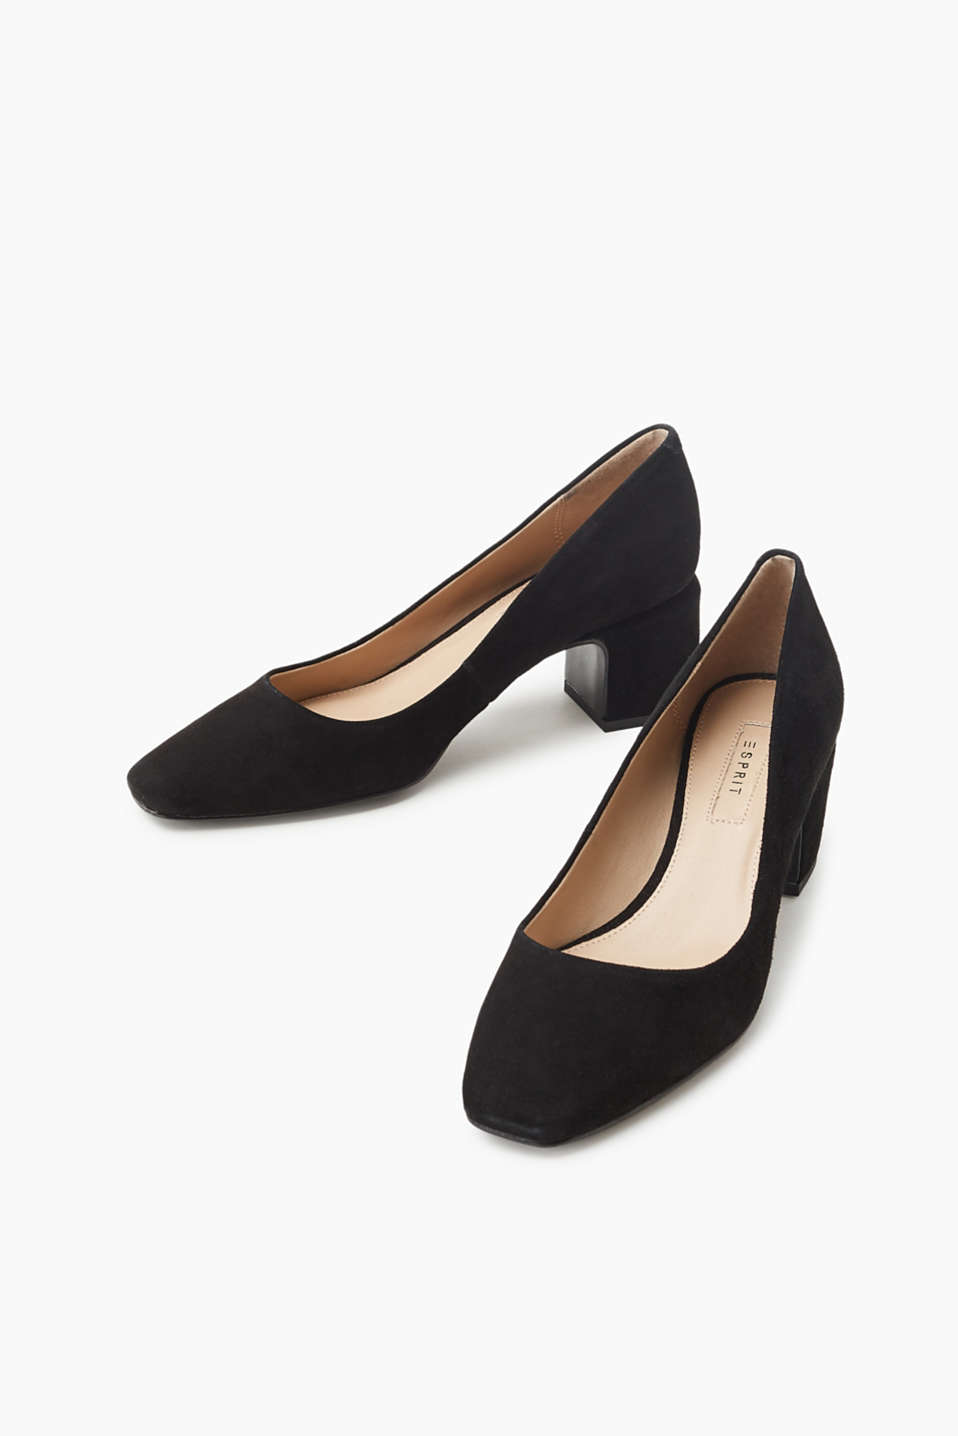 Kid leather court shoes with a block heel